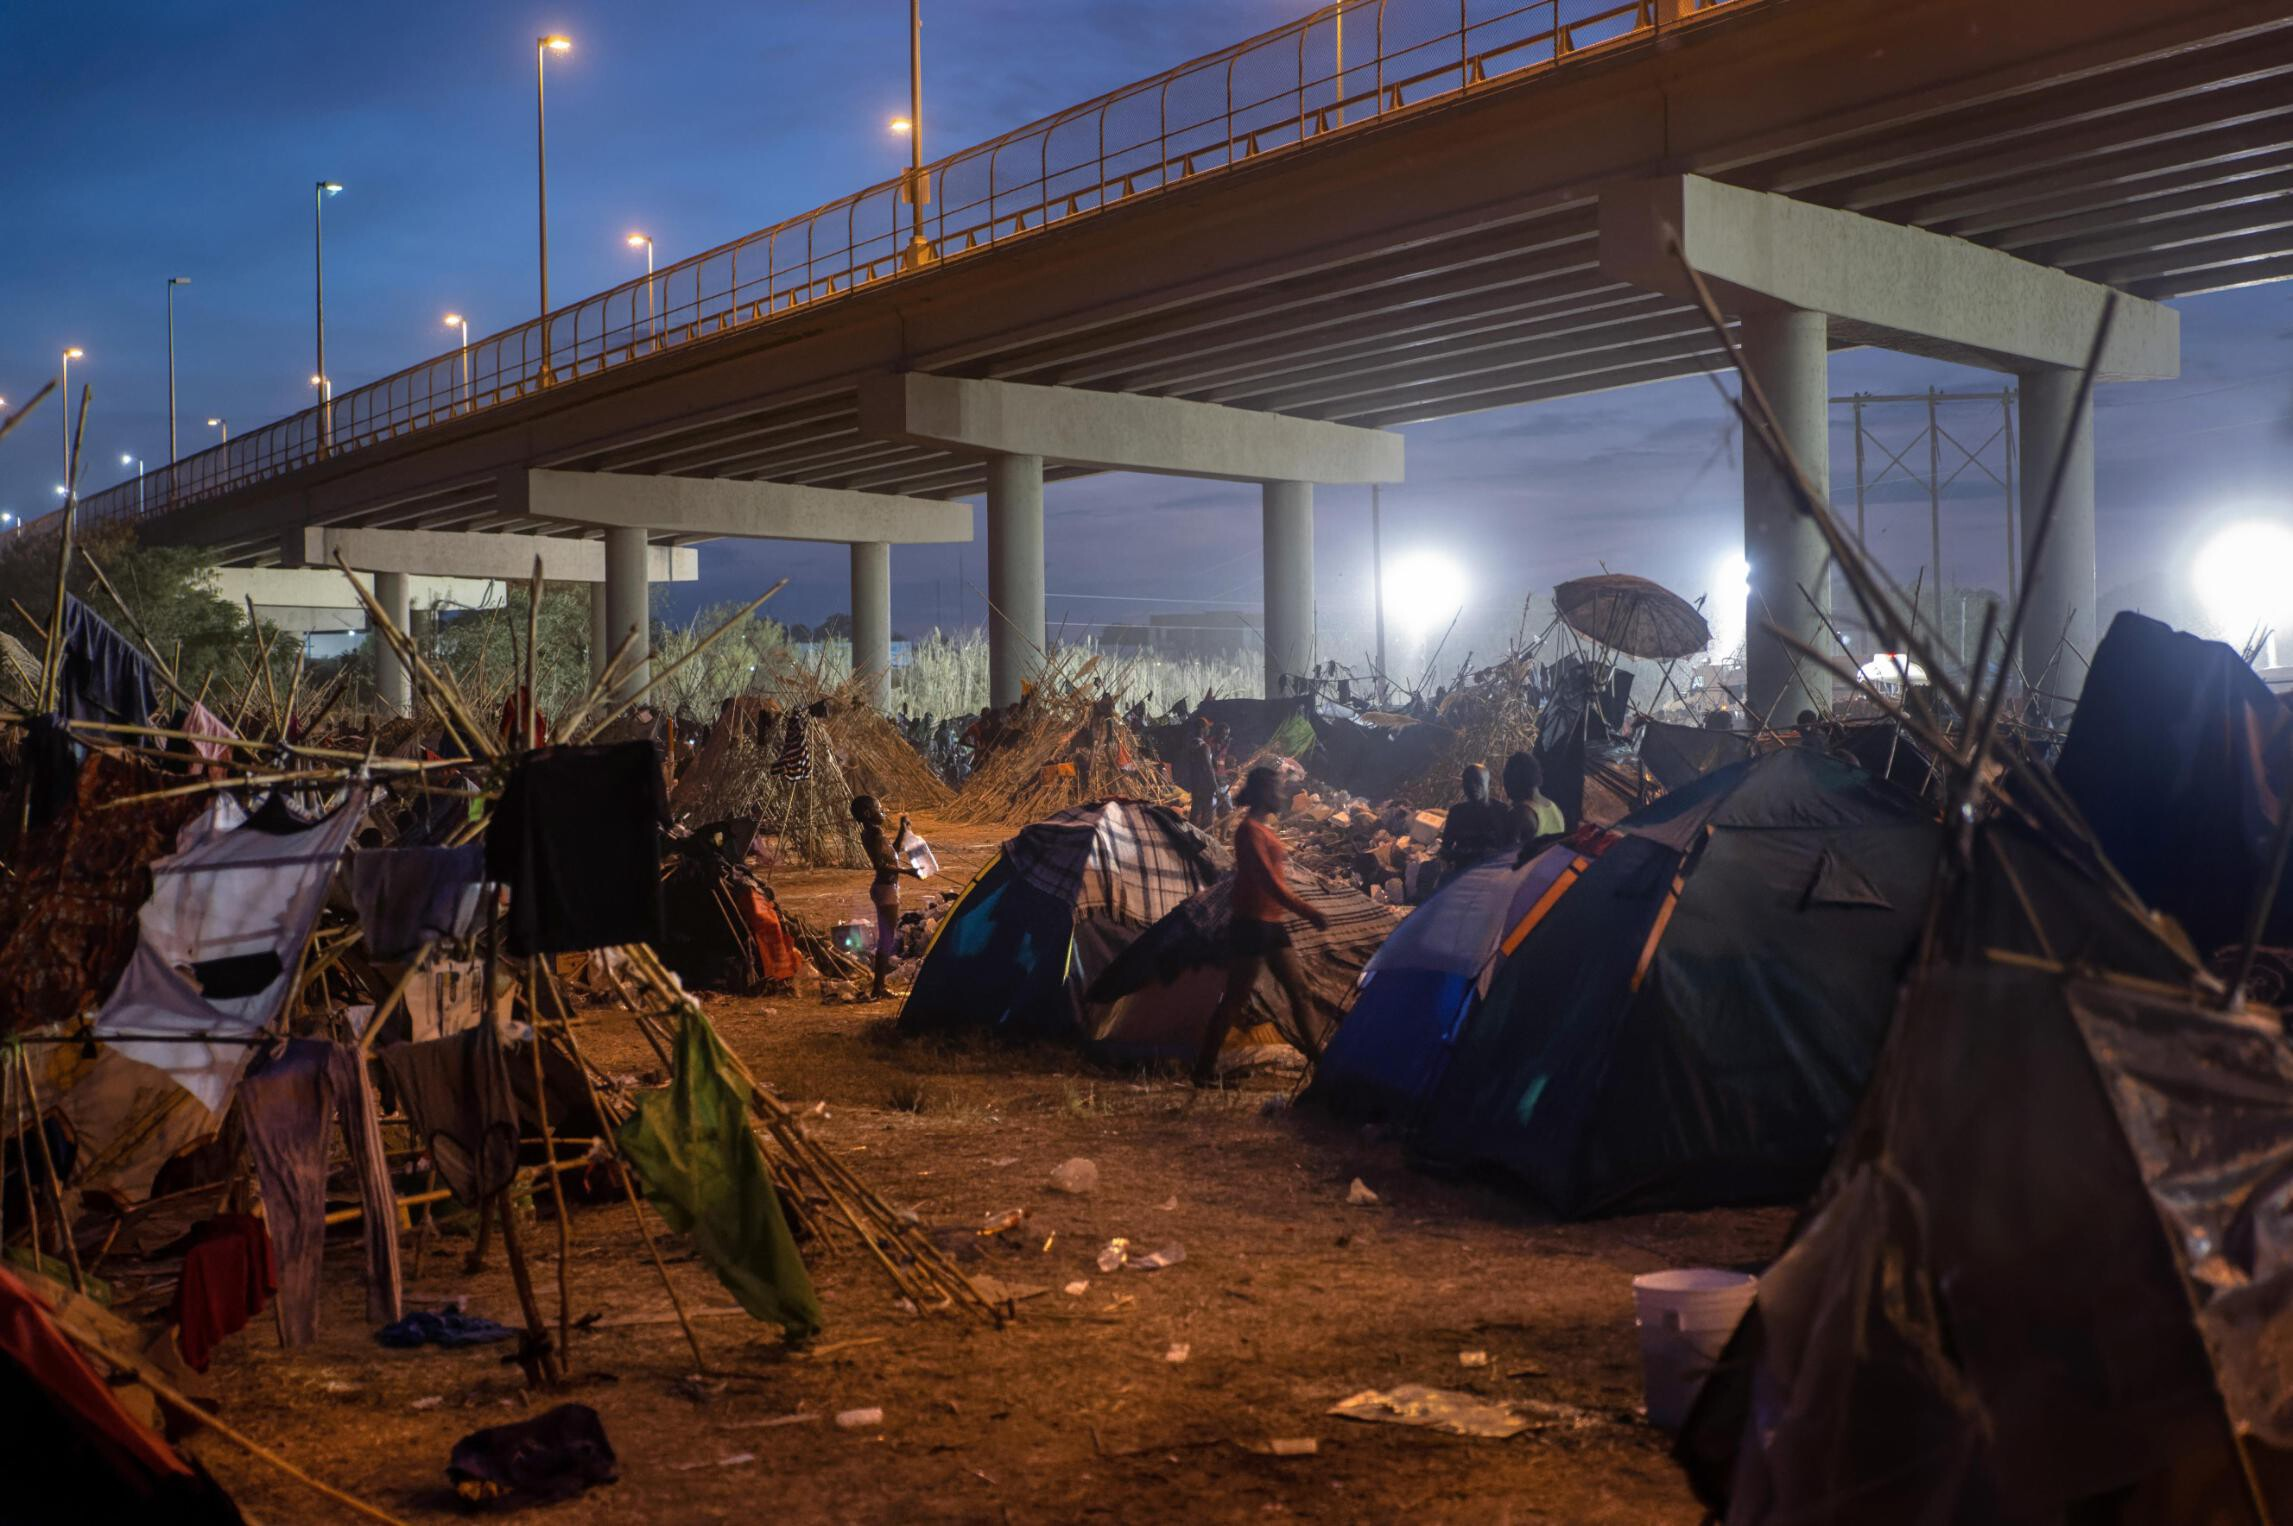 <i>John Moore/Getty Images</i><br/>The number of migrants apprehended in Del Rio